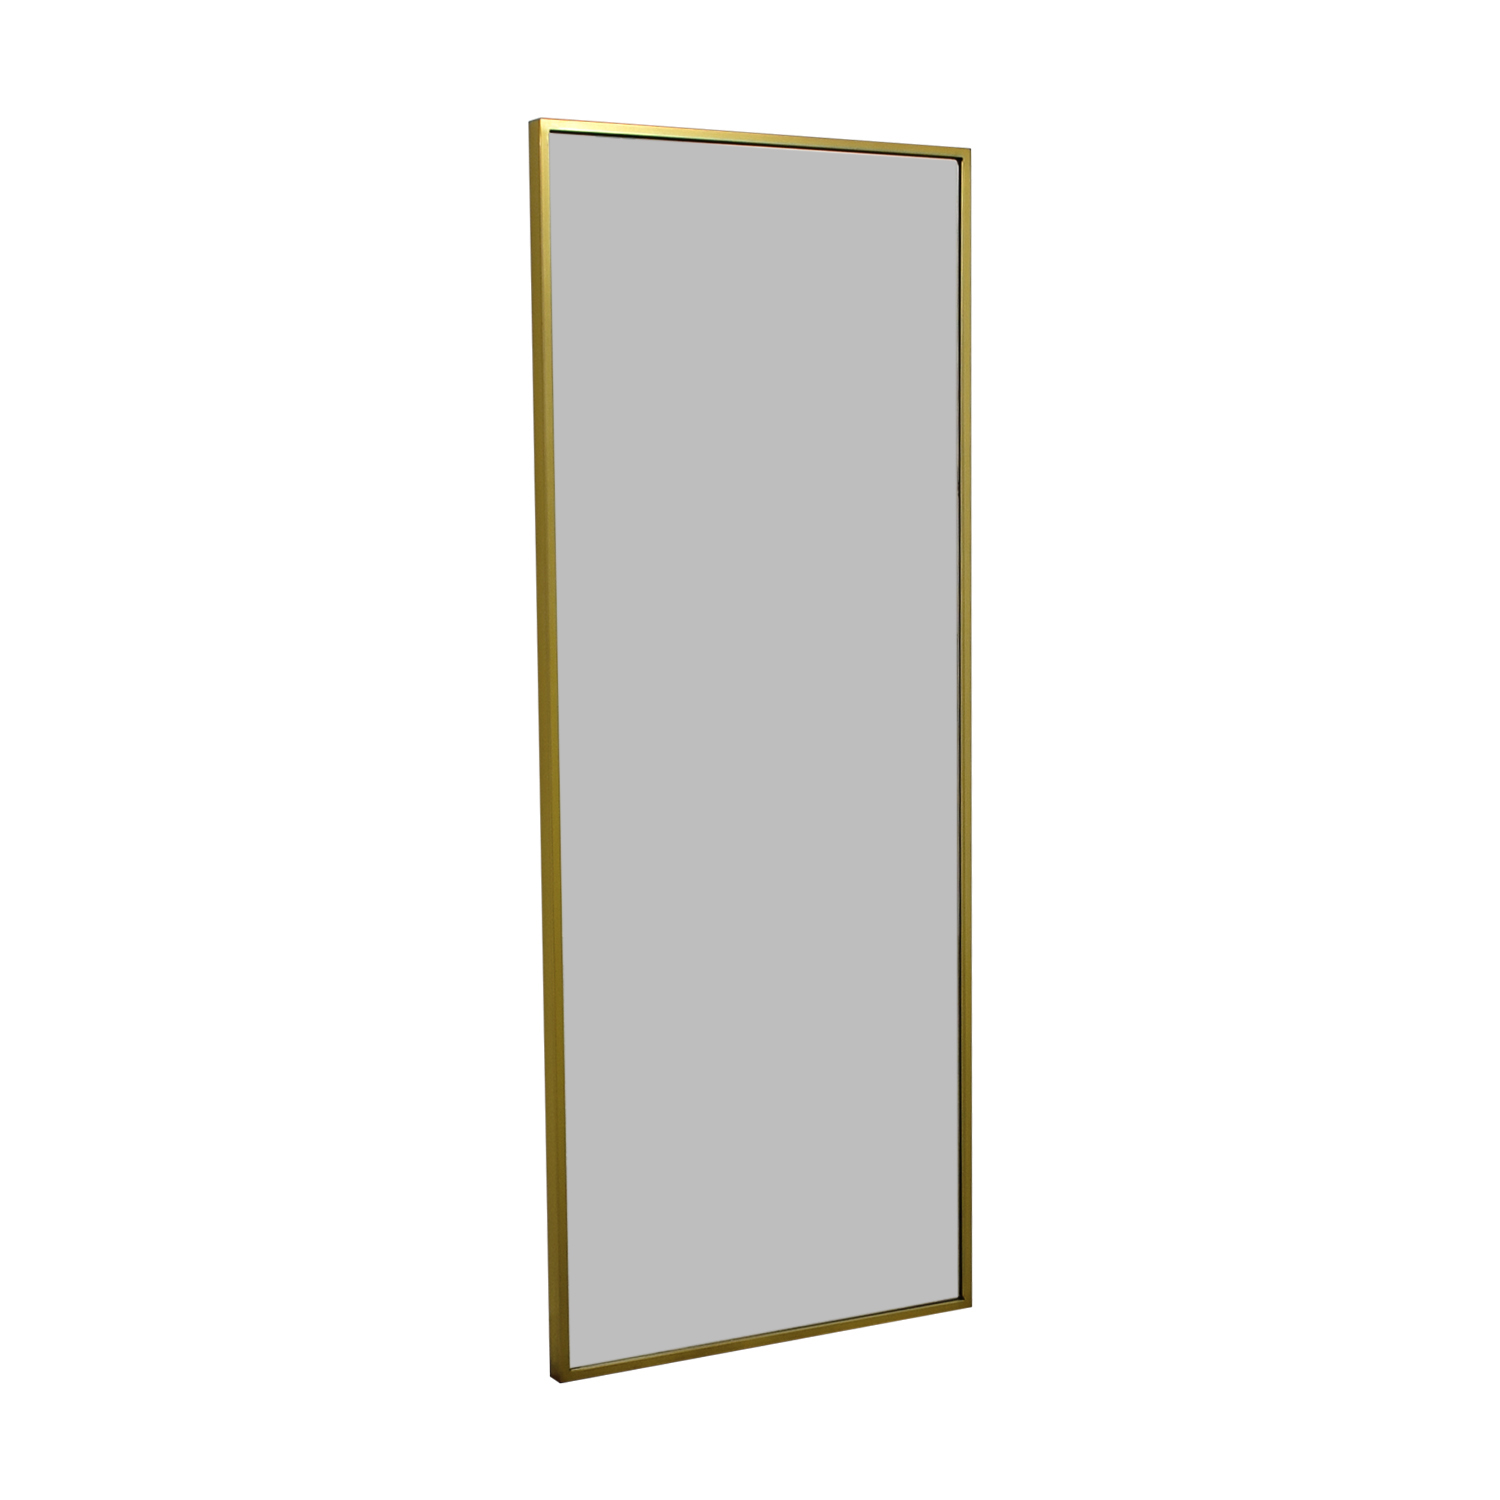 West Elm West Elm Metal Framed Floor Mirror Storage